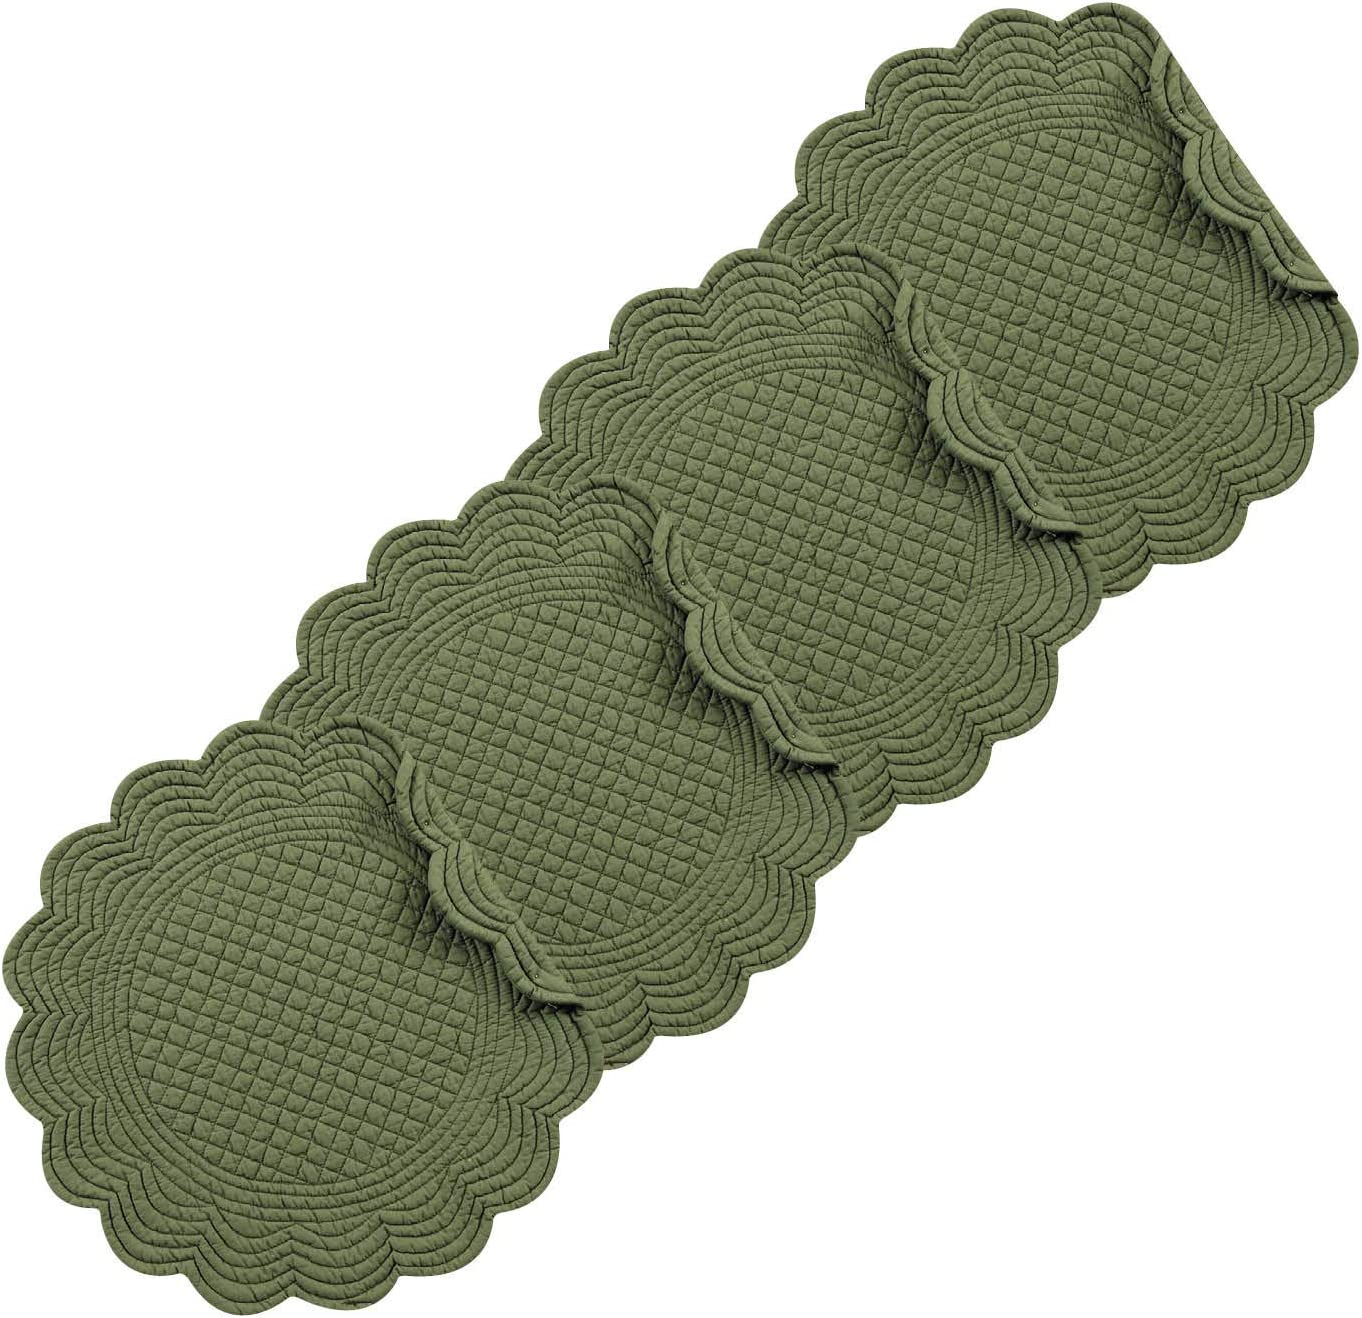 C&F Home Pine Round Cotton Reversible Machine Washable Placemat Set of 4 Round Placemat Pine Green